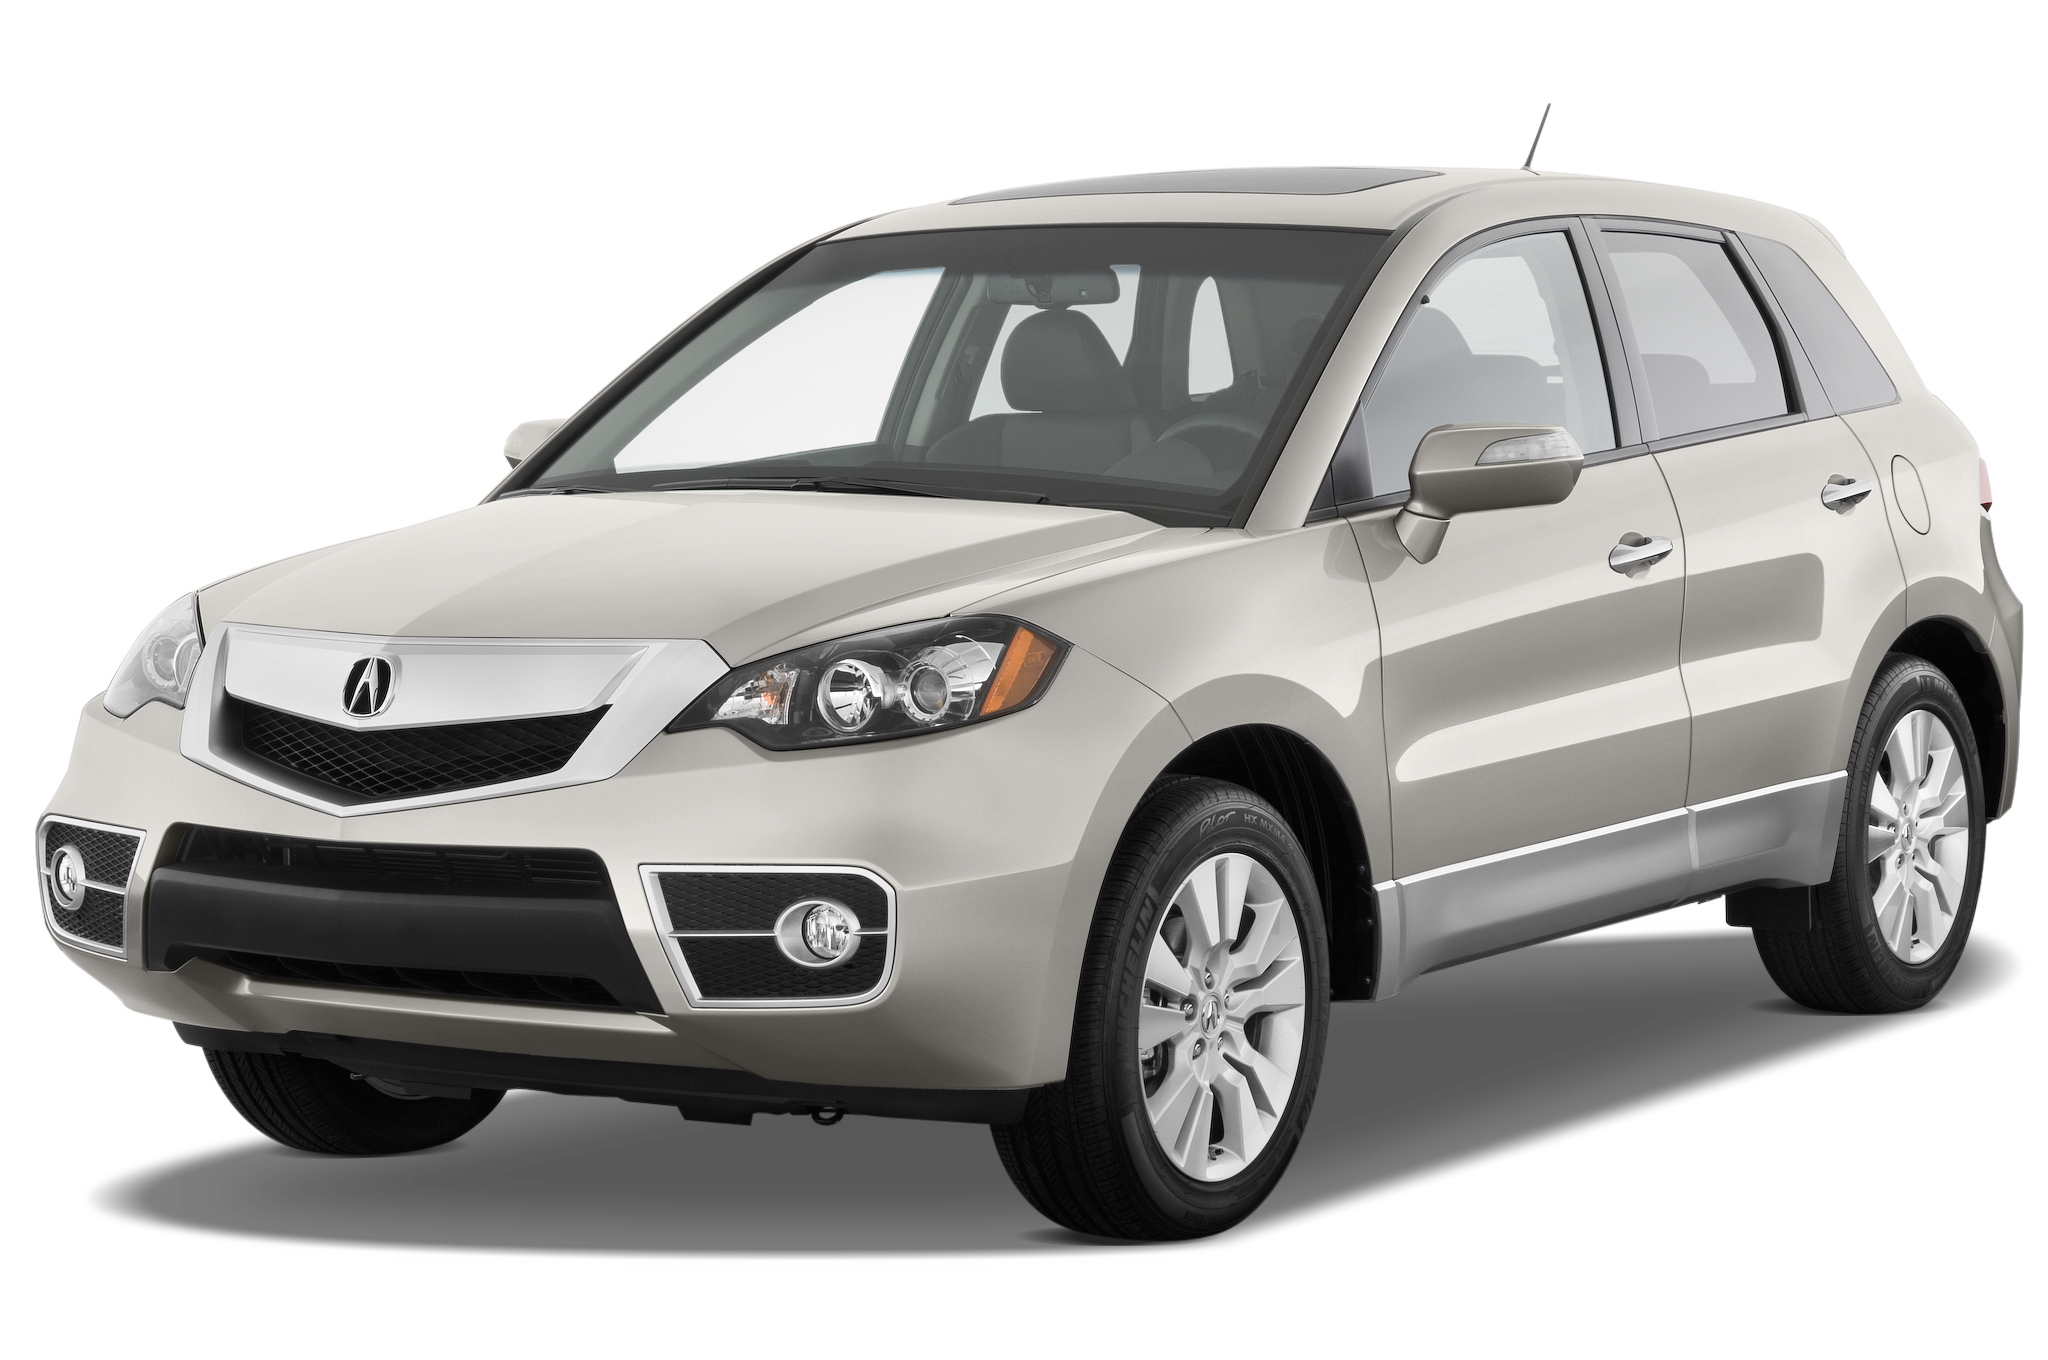 acura package rdx watkinsville for used athens of glamours sale pkg ga technology near tech